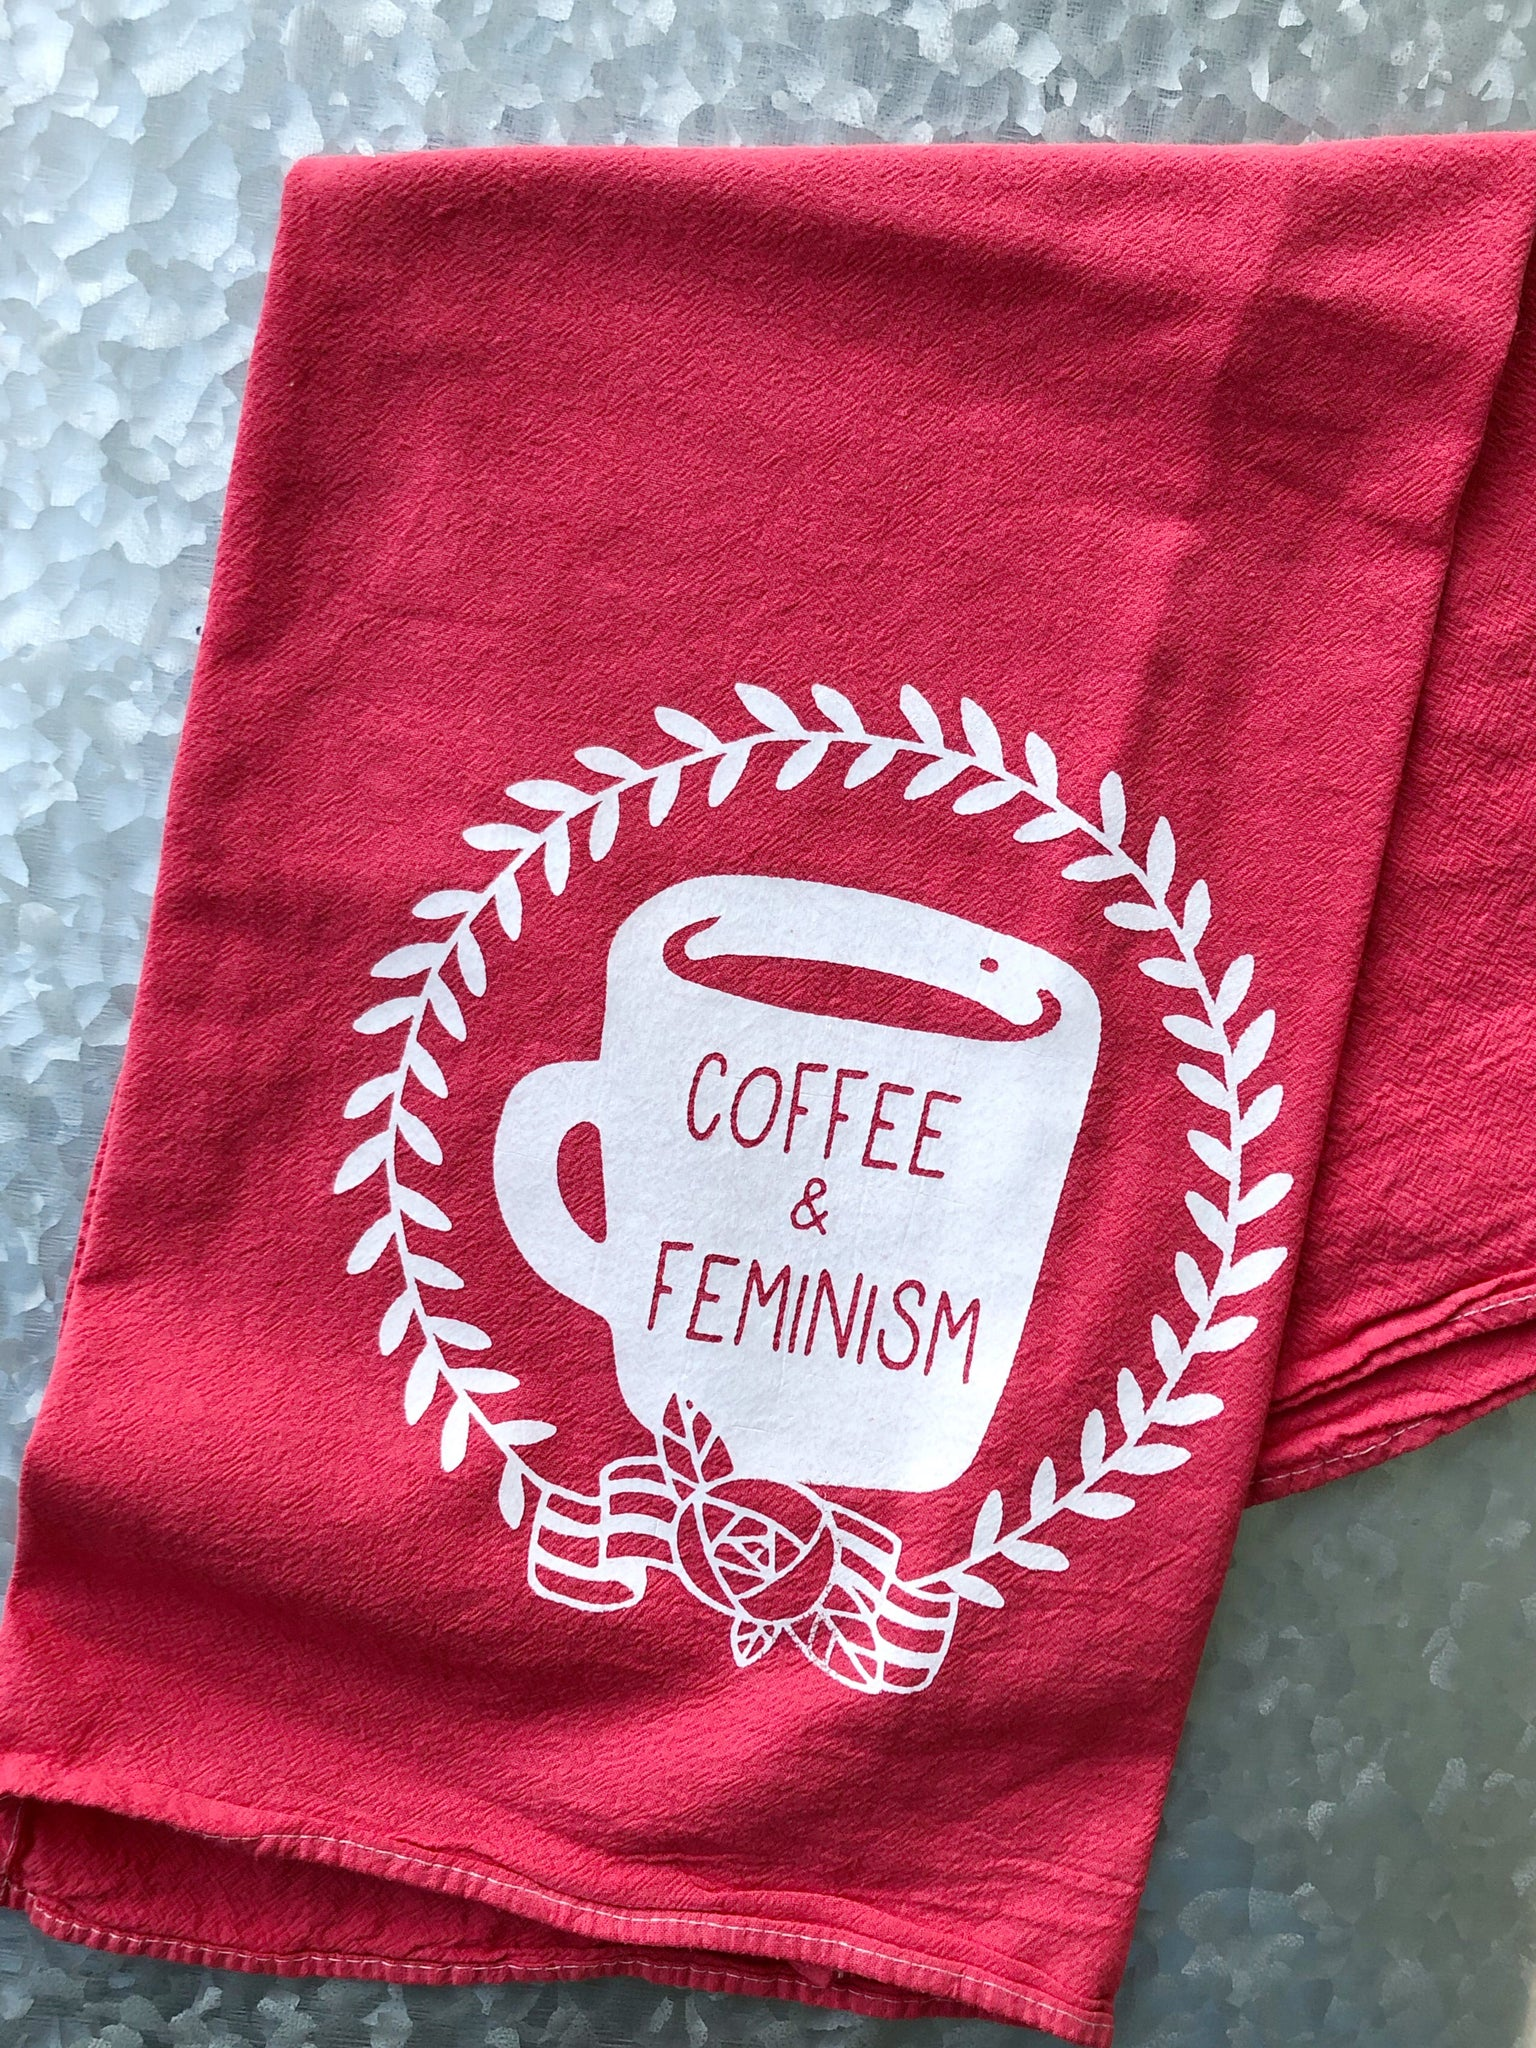 Coffee and Feminism Flour Sack Towel - That Oregon Girl